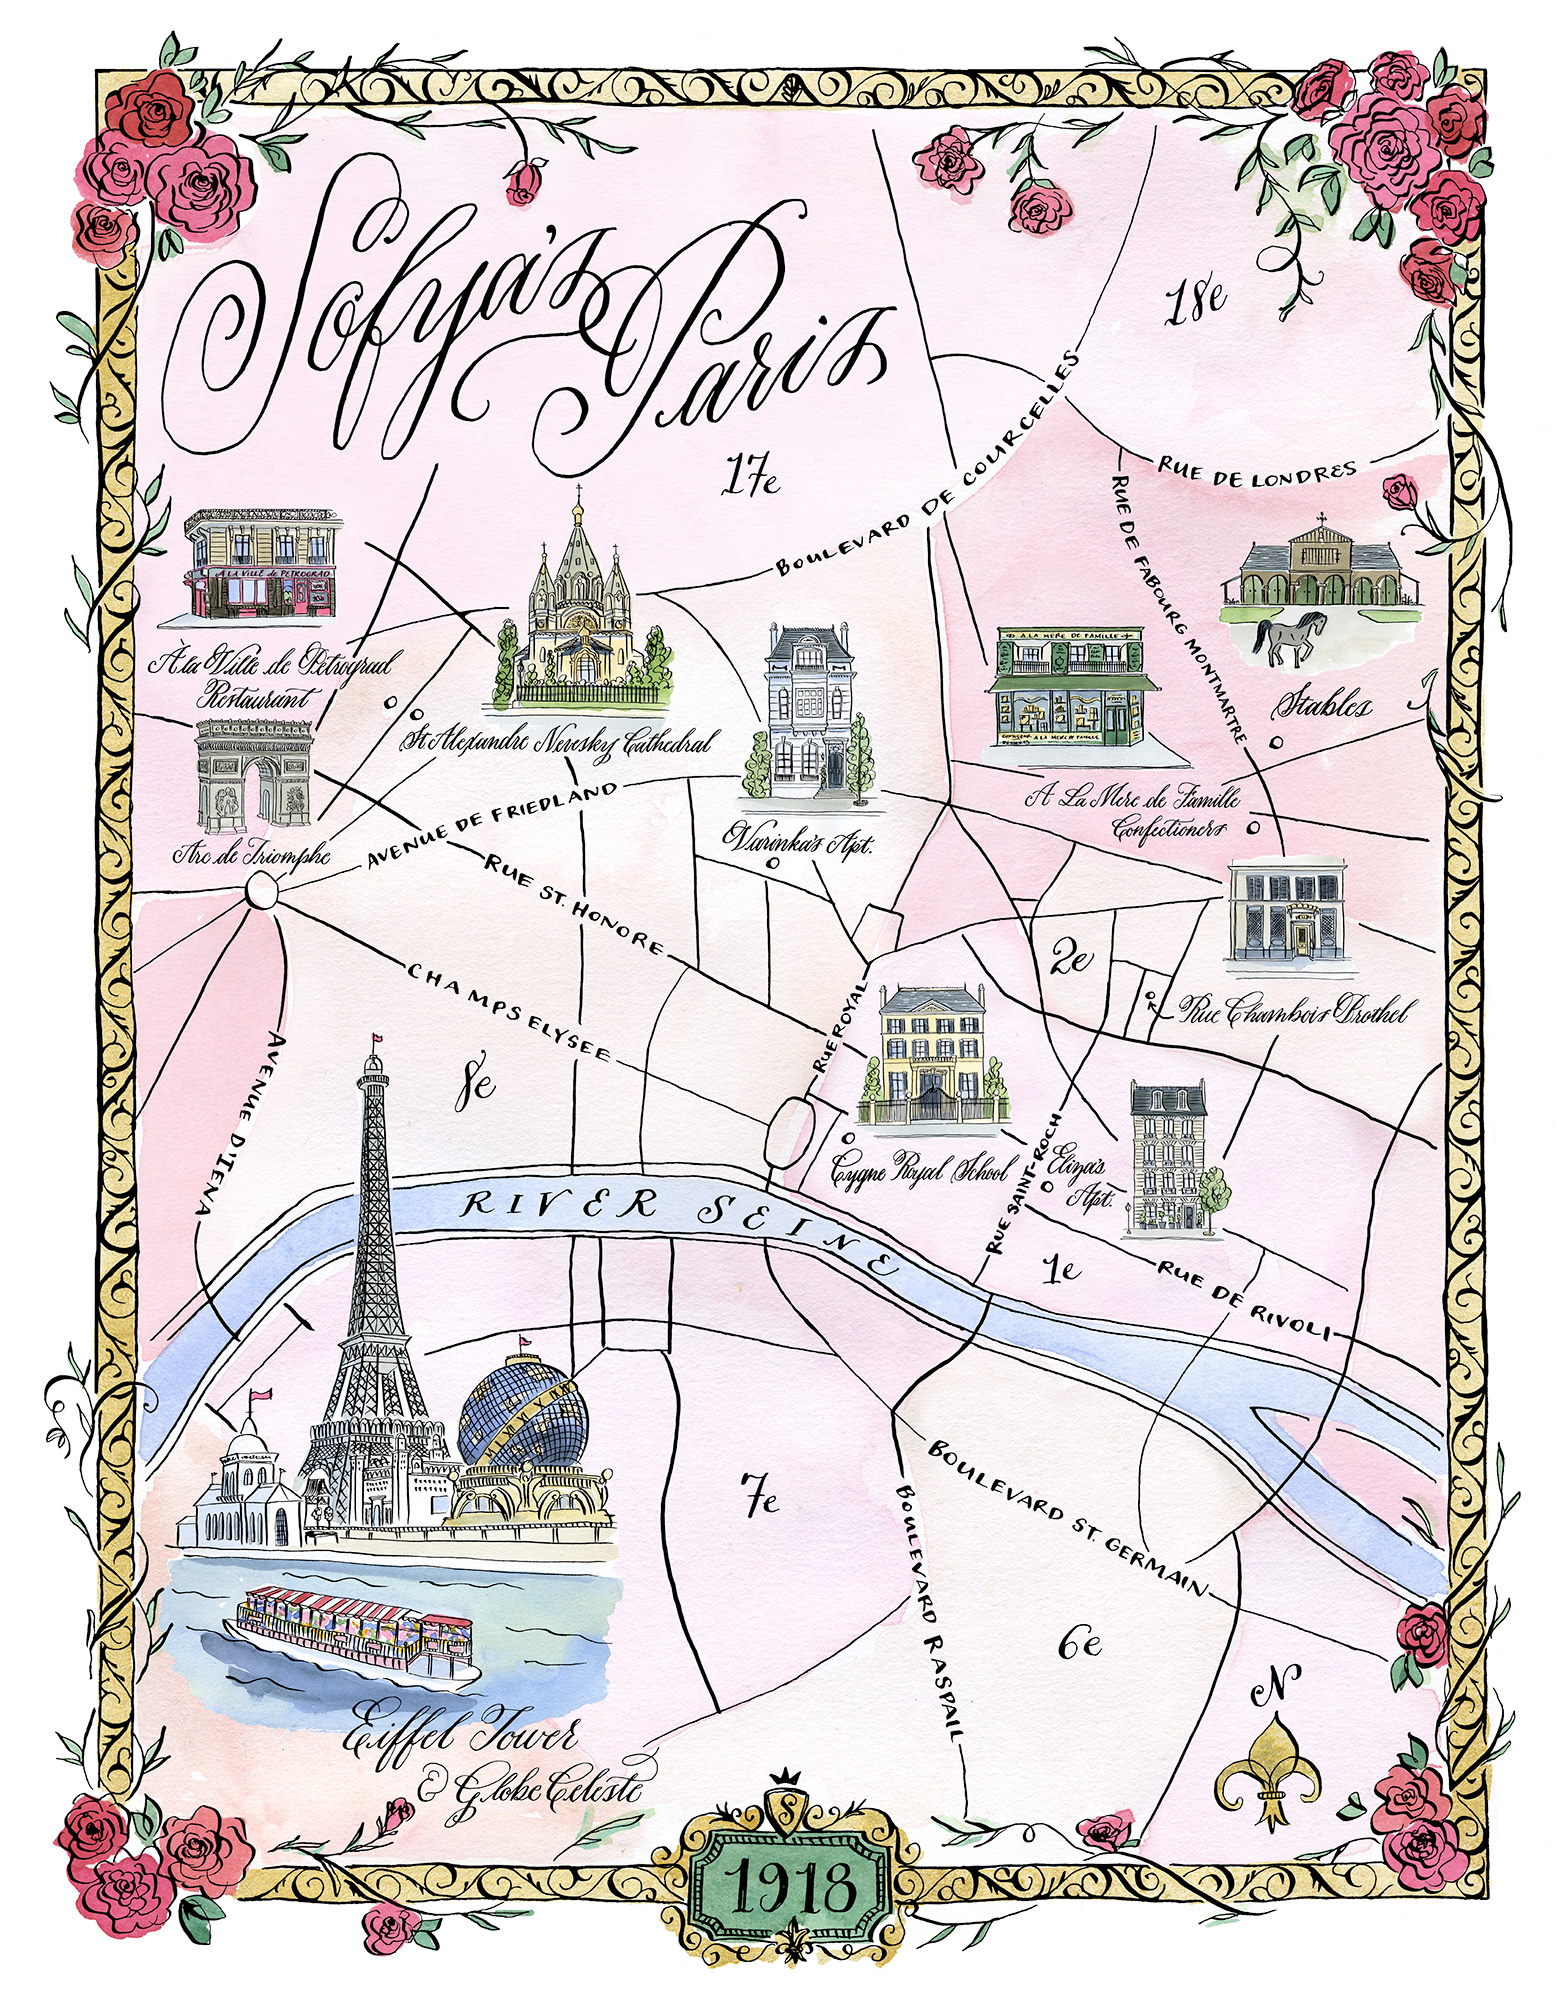 An Illustrated Map of Sophia's Paris from Lost Roses